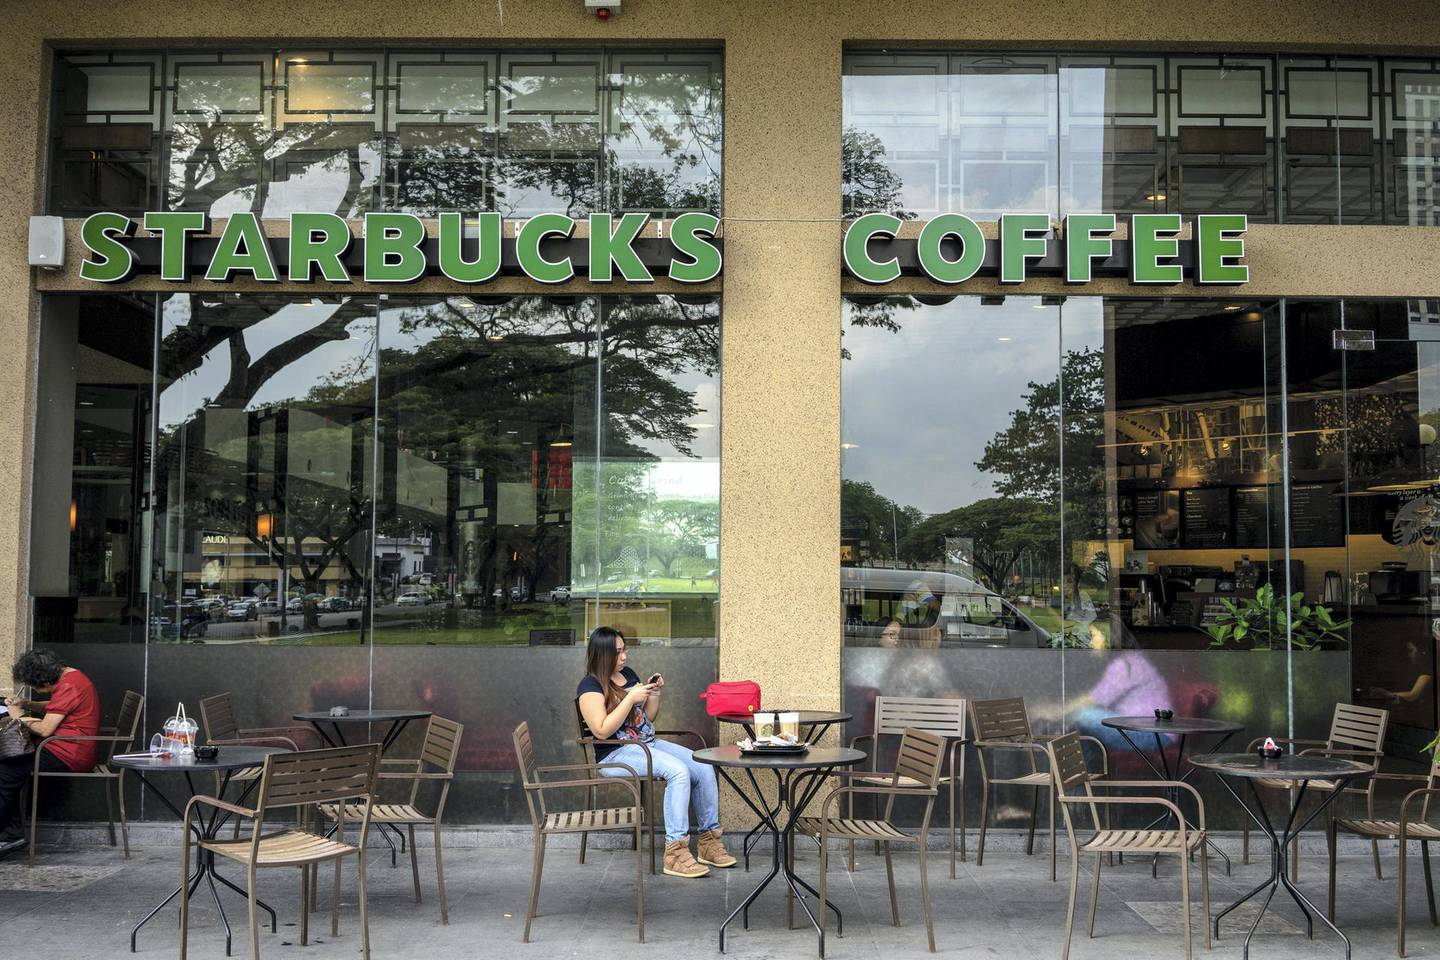 Customers sit inside and outside a Starbucks Corp. coffee shop at Parksons Mall in Kuching, Sarawak, Malaysia, on Wednesday, April 13, 2016. Separated from peninsular Malaysia by the South China Sea, Sarawak was the country's third-largest state or territory contributor to gross domestic product in 2015, accounting for an estimated 10.6 percent of output. Photographer: Sanjit Das/Bloomberg